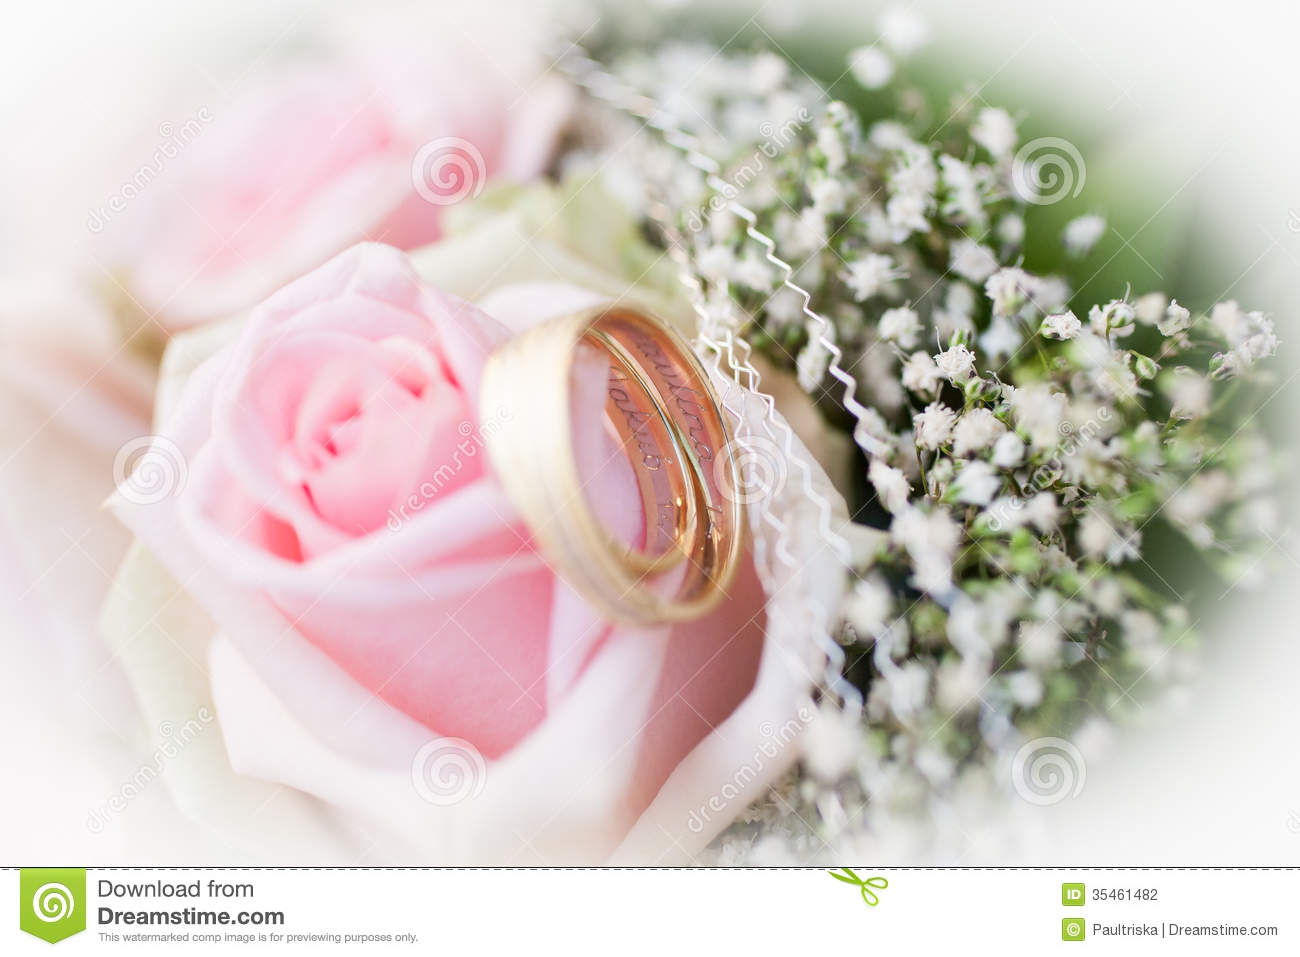 Wedding rings and roses stock photo. Image of event, jewelry - 35461482